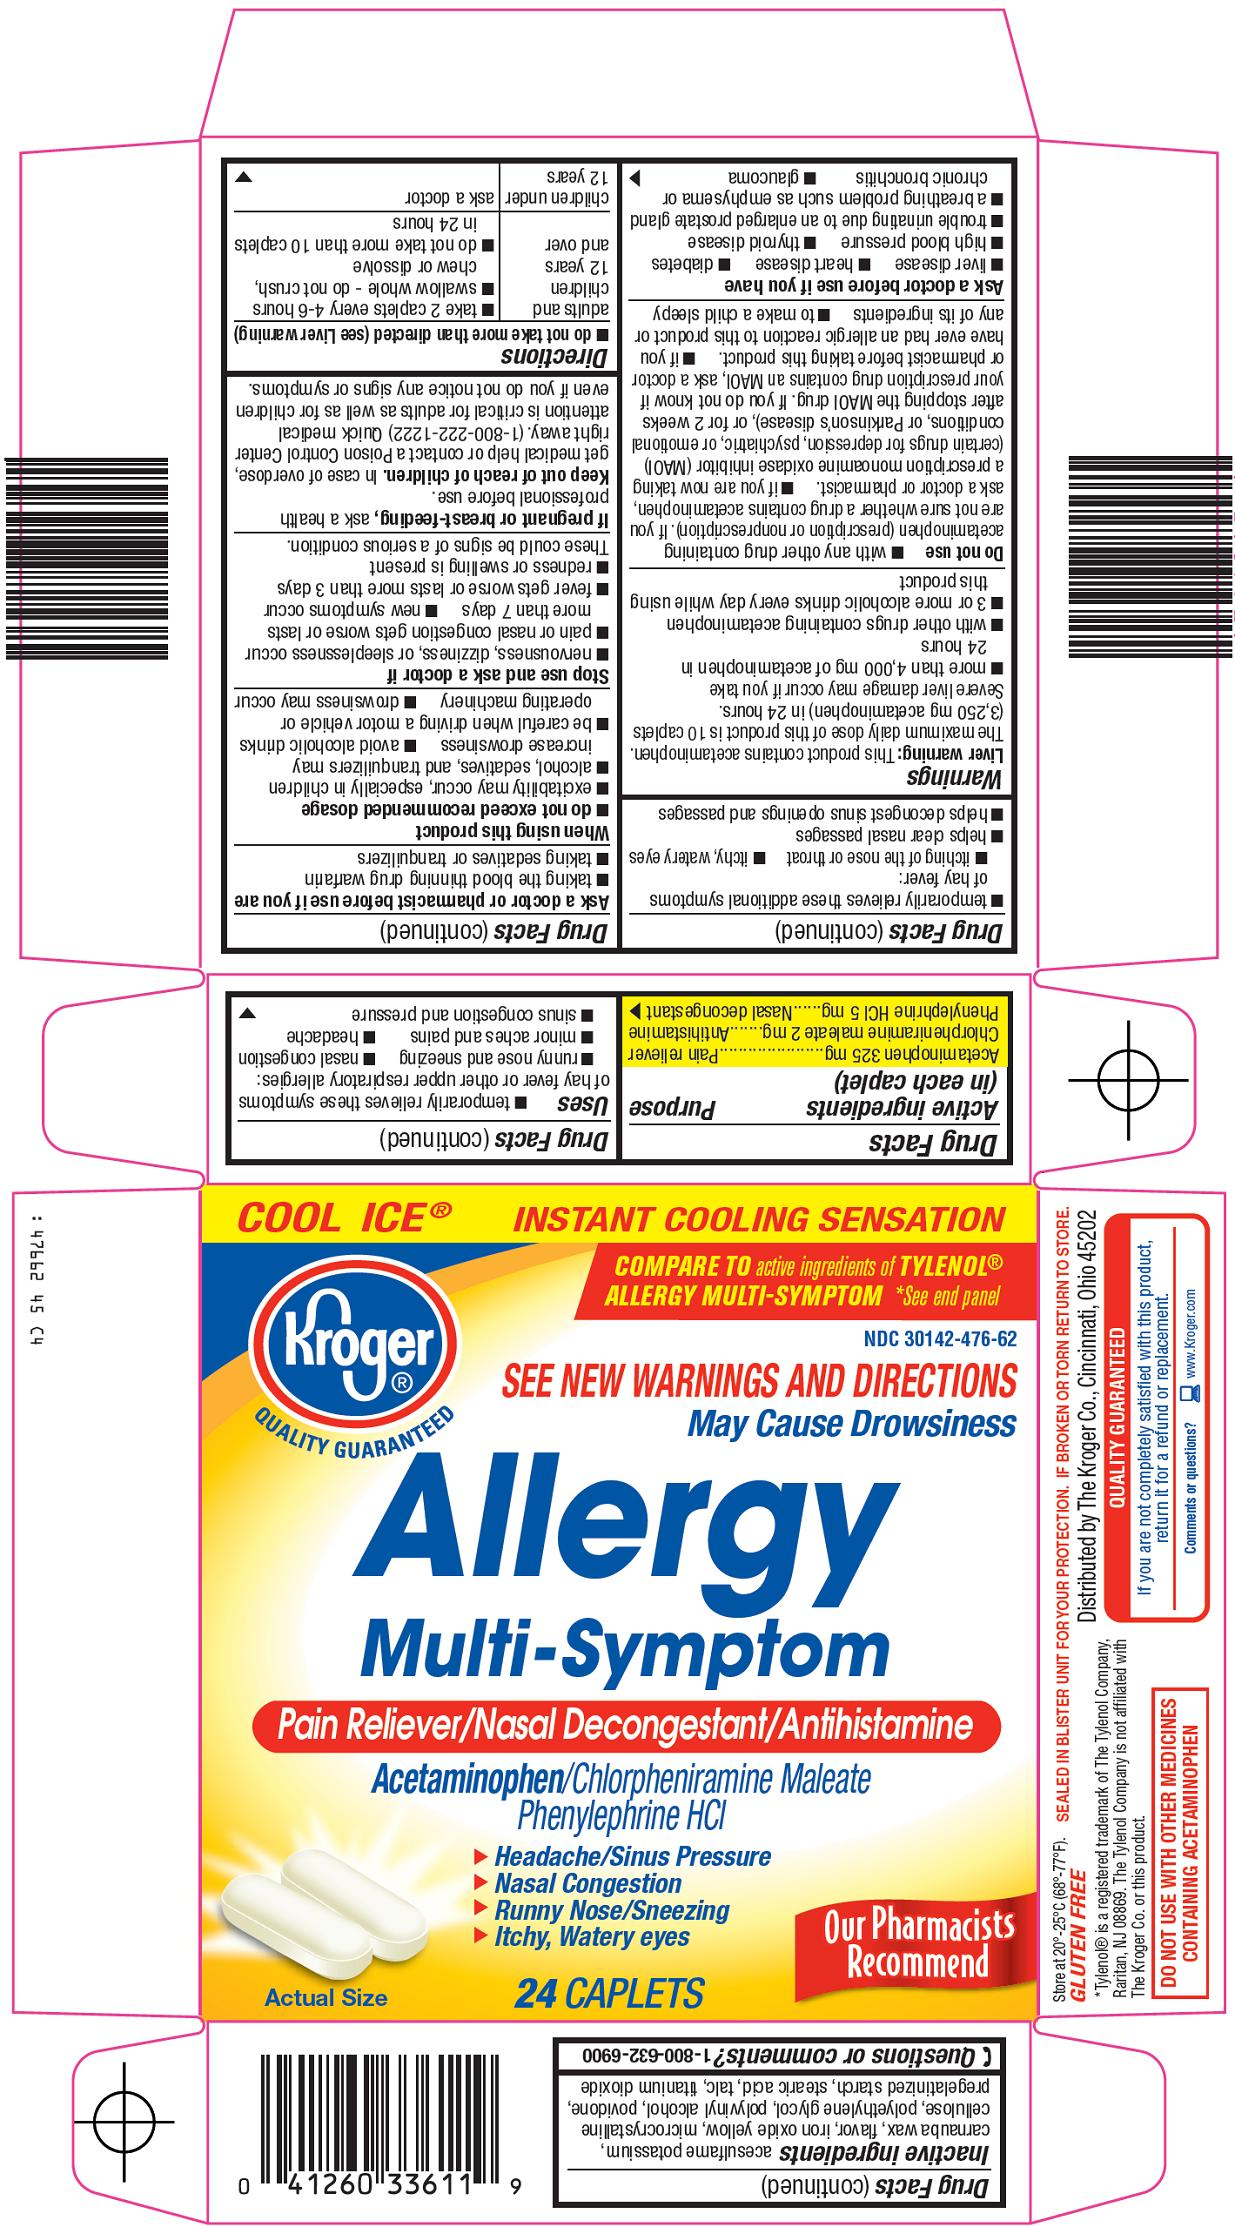 Allergy Carton Image